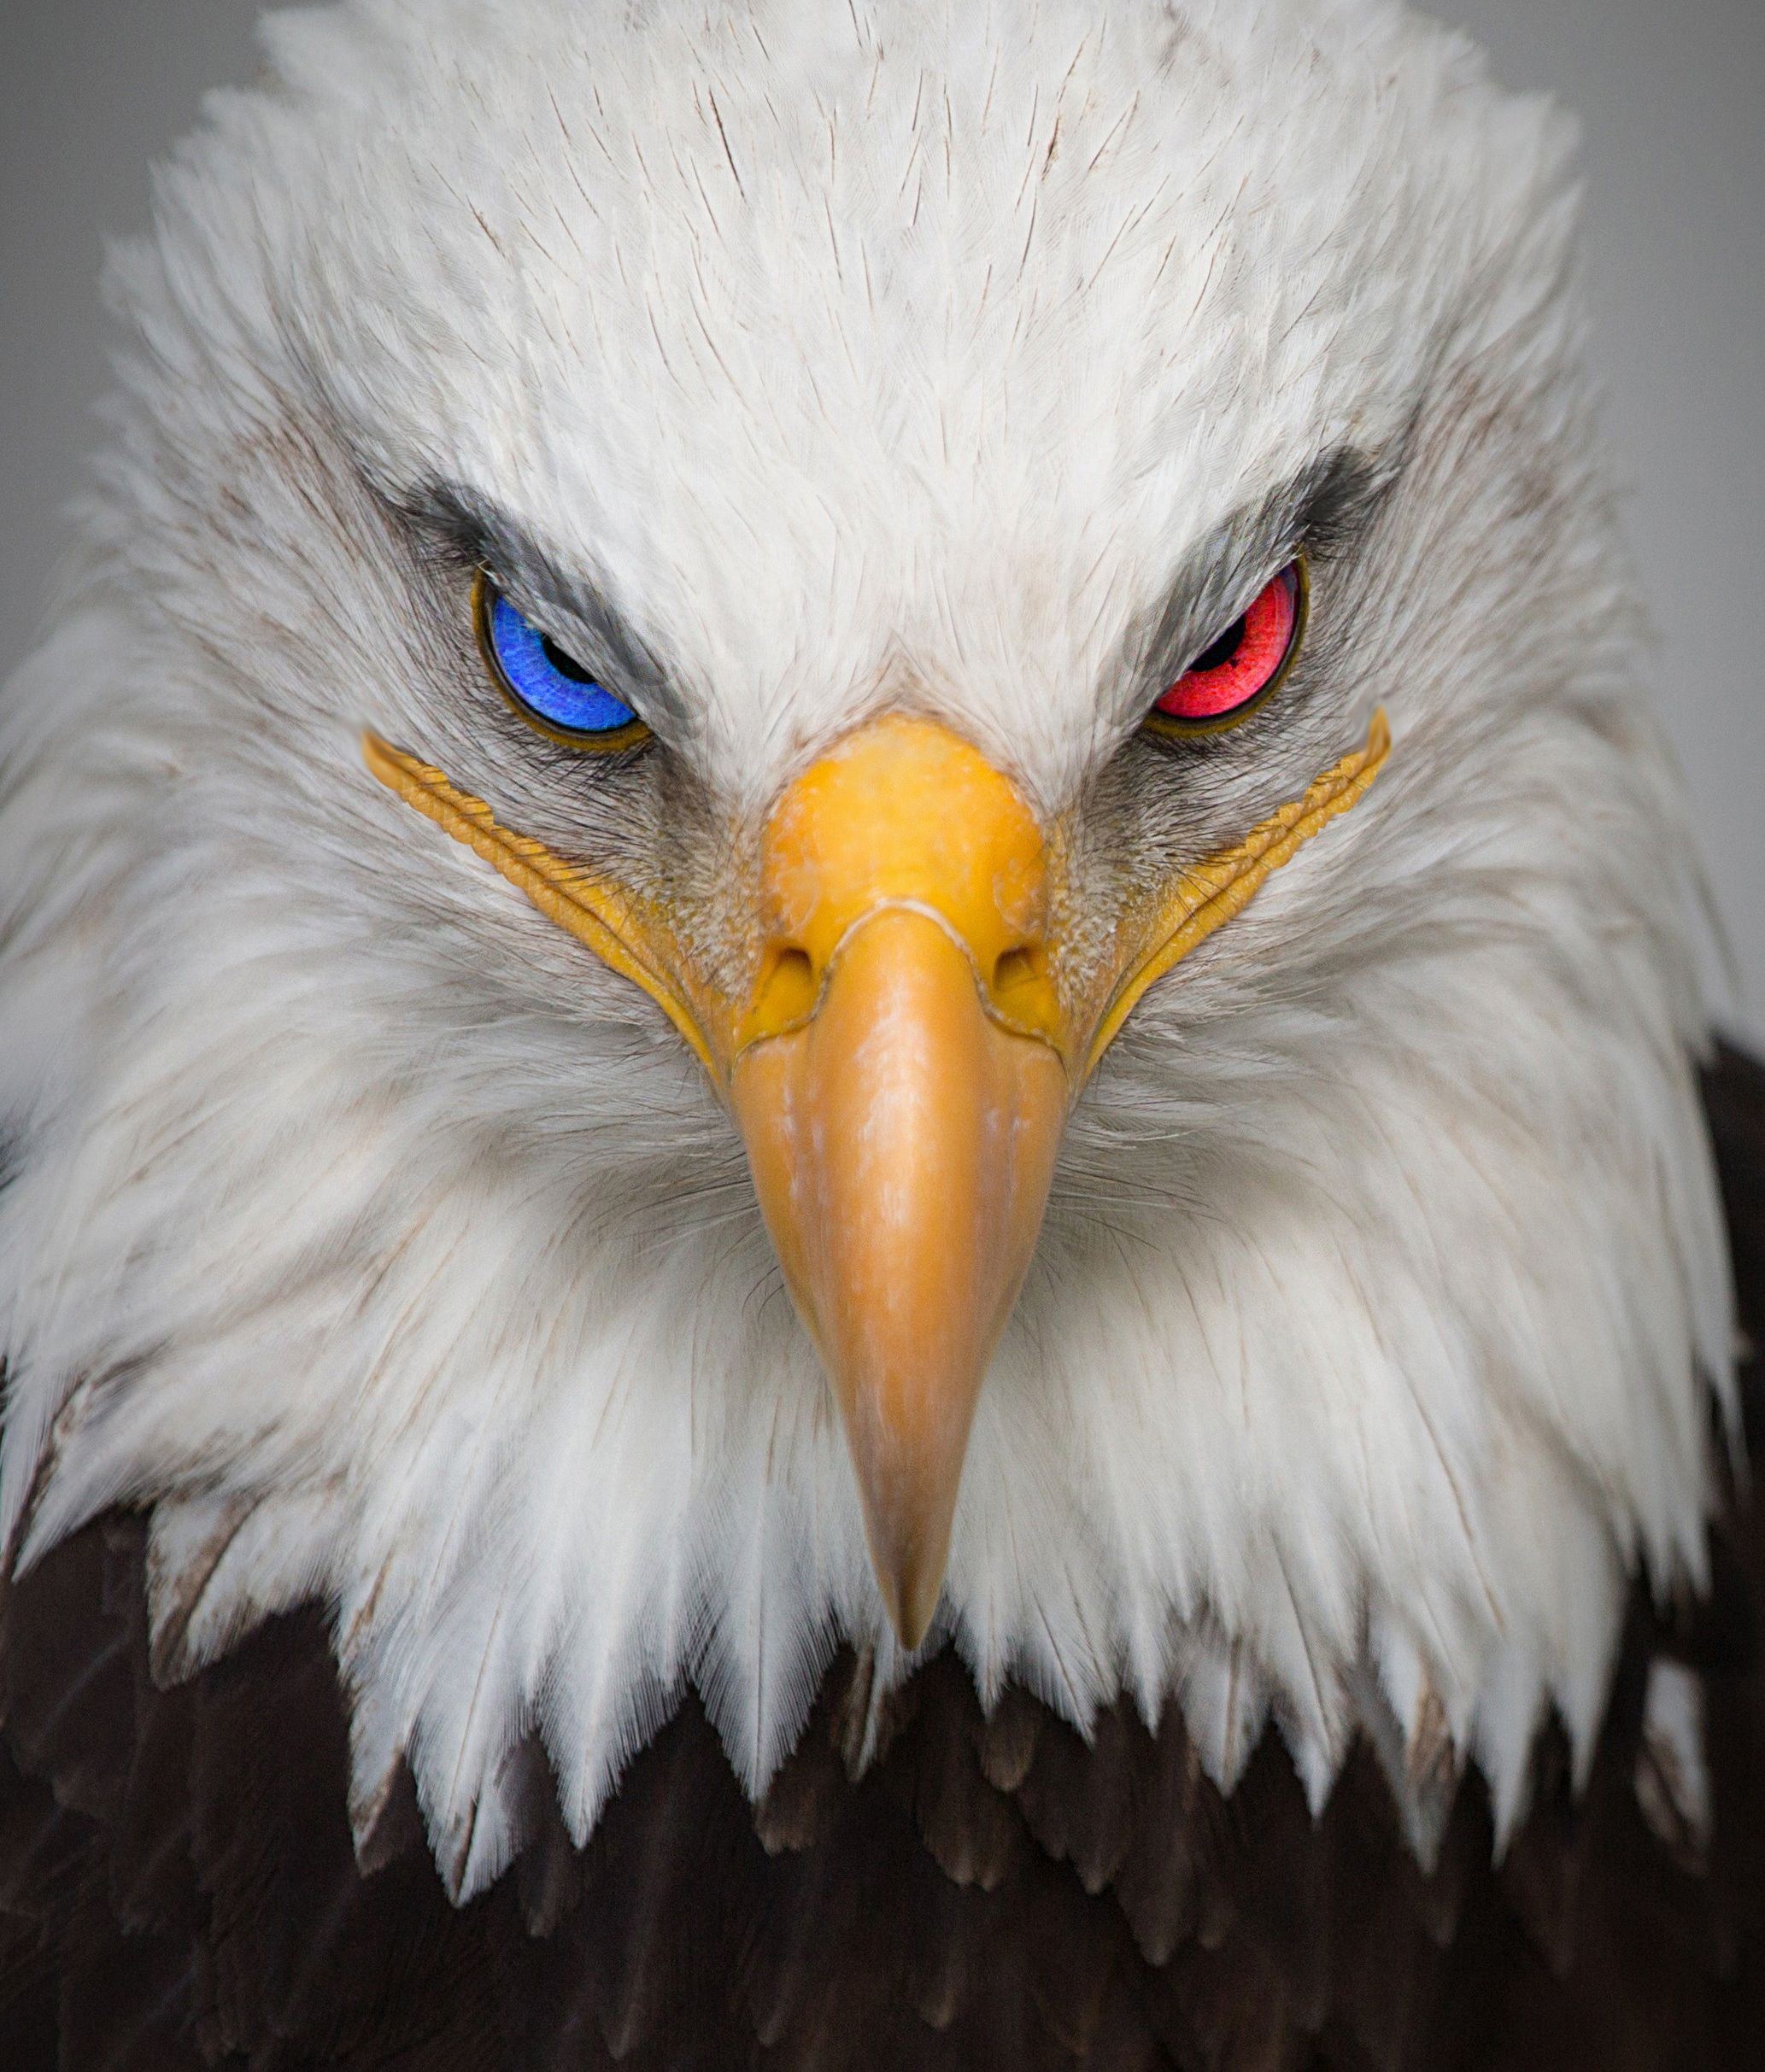 Angry American Eagle | Eagle pictures, Bald eagle, Bird pictures